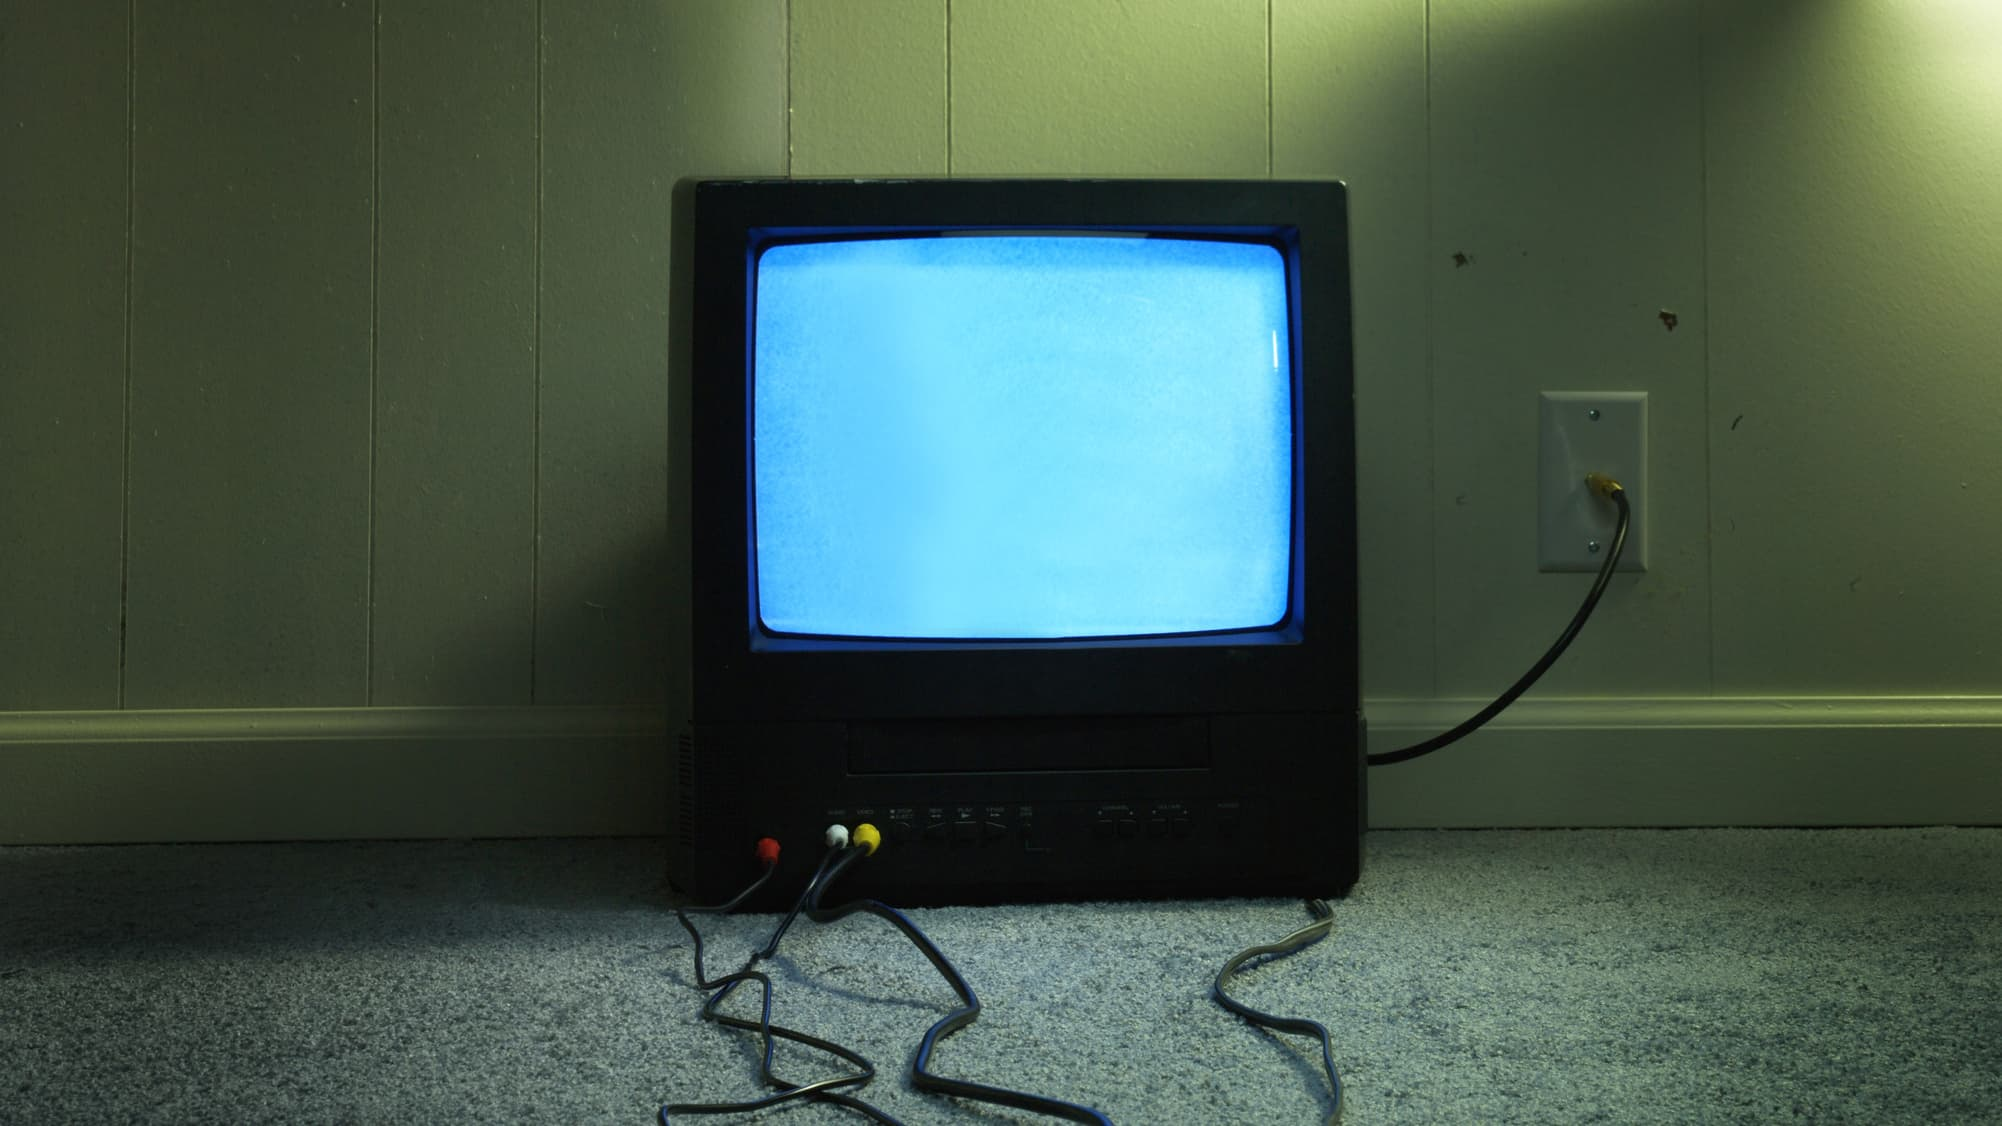 hight resolution of the future of cable may be no tv at all as one small company from arizona shows